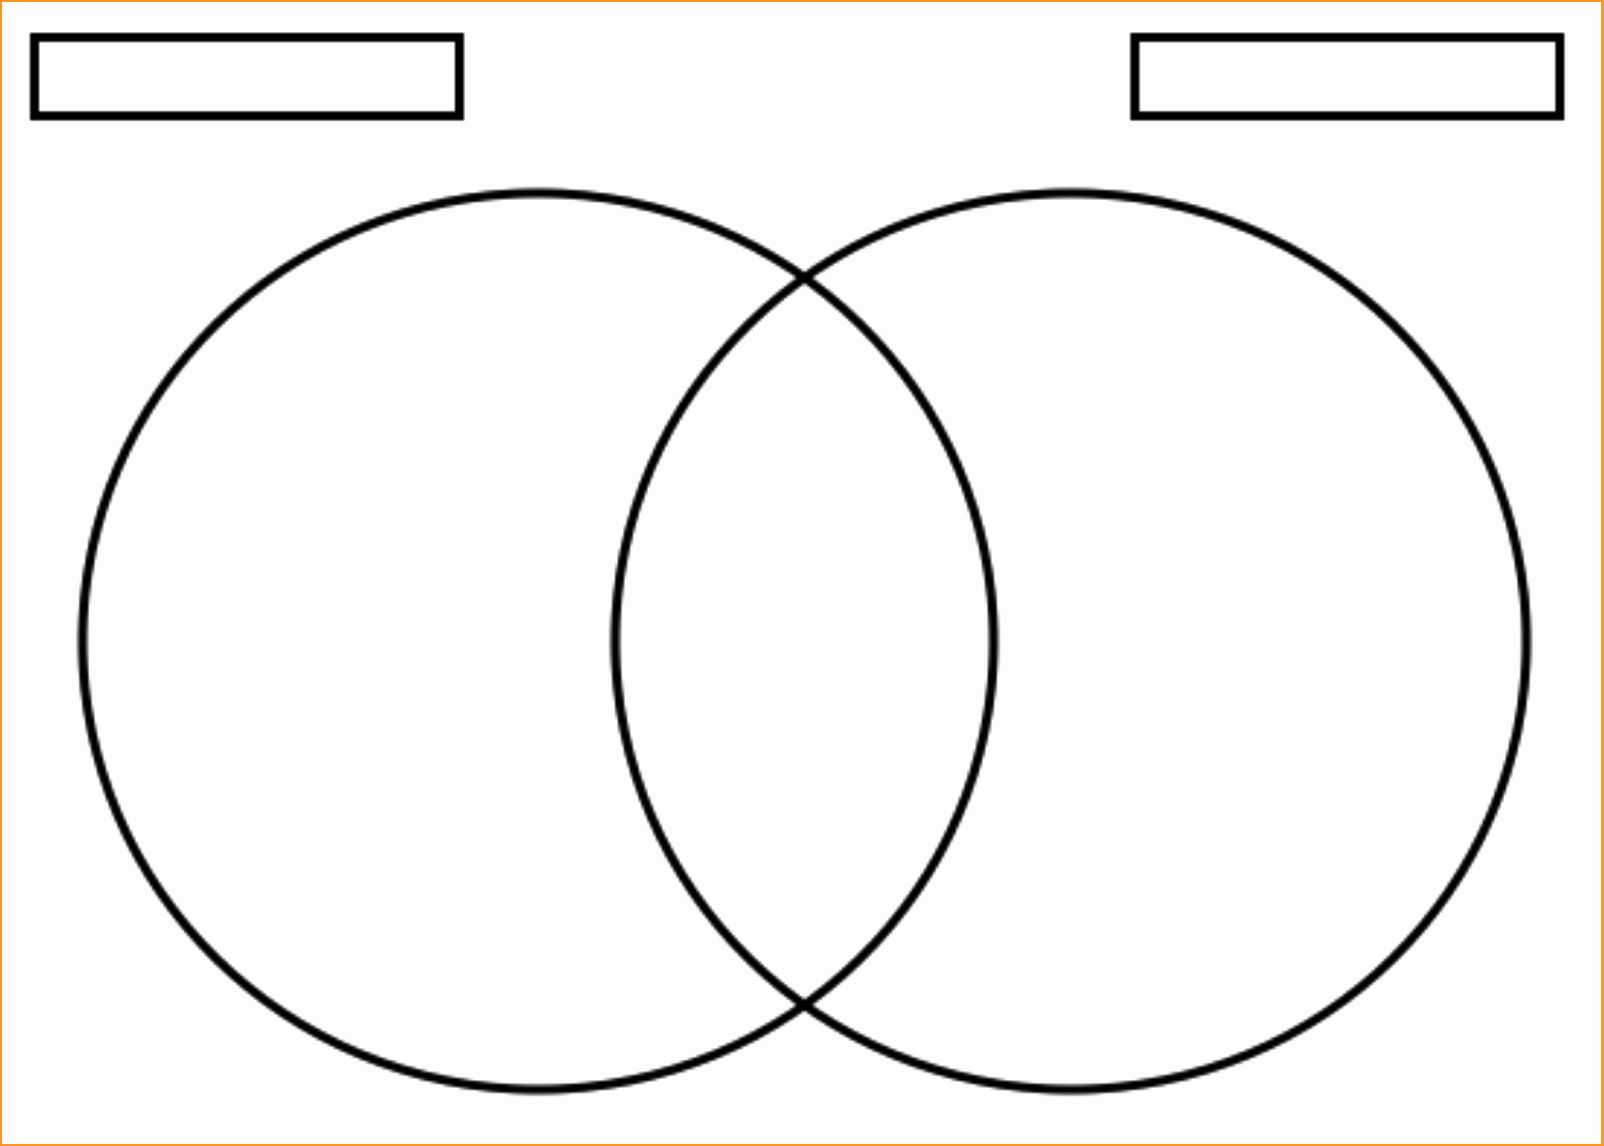 Venn Diagram To Print Luxury Venn Diagram Template In